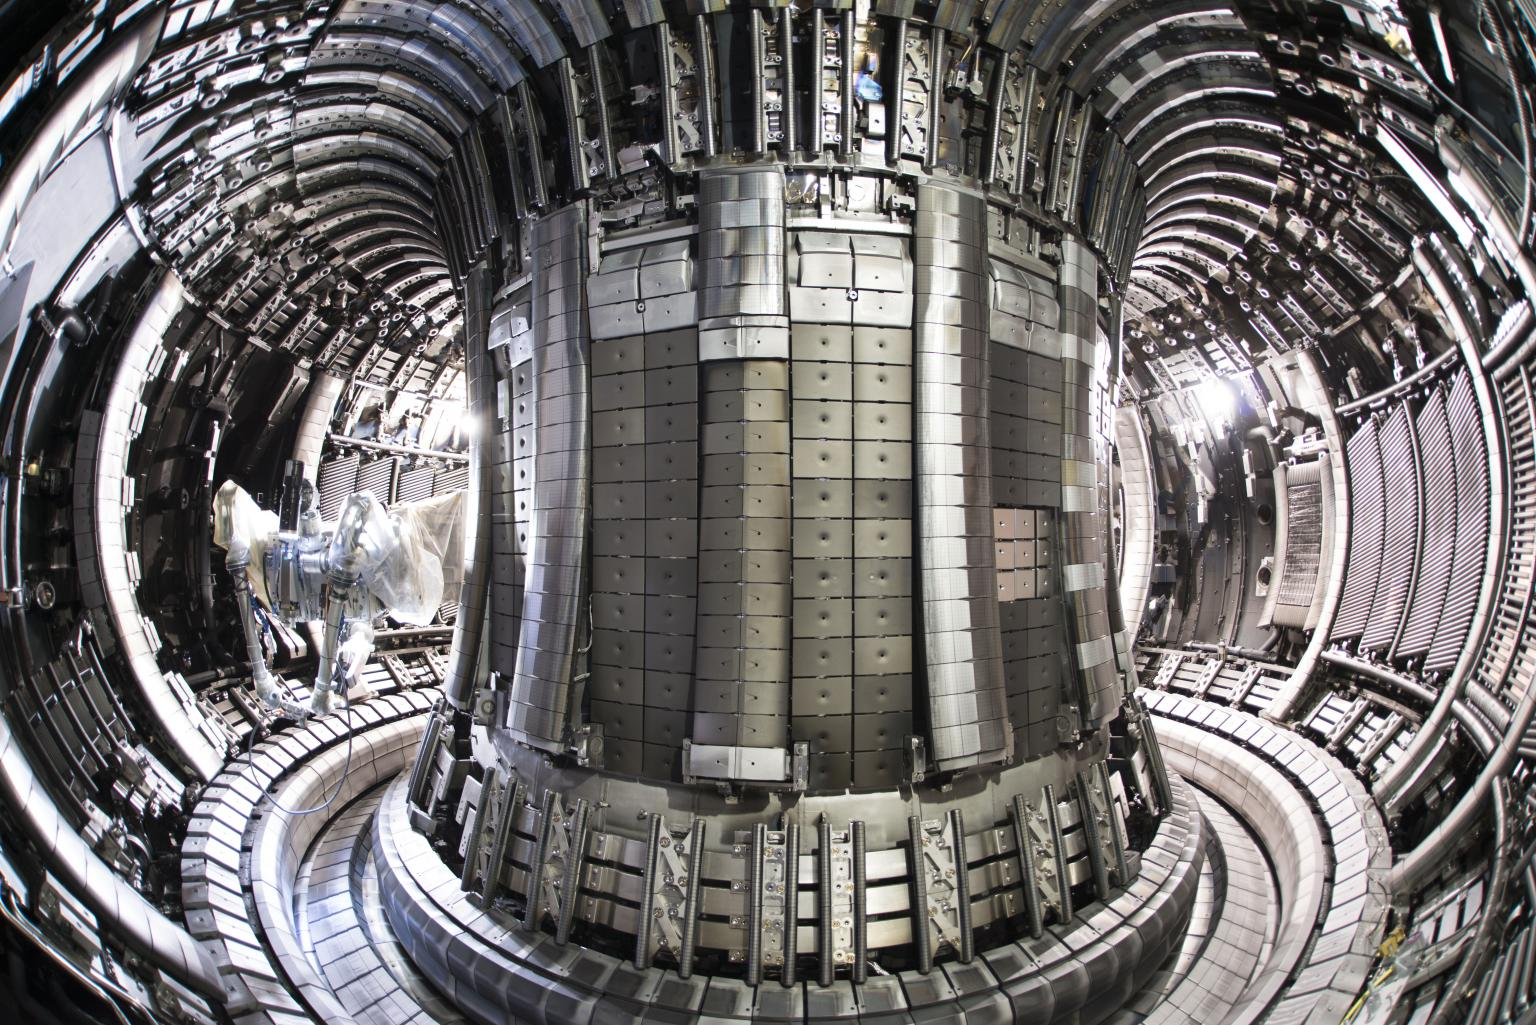 The JET Nuclear fusion tokamak is the world's largest nuclear power experiment